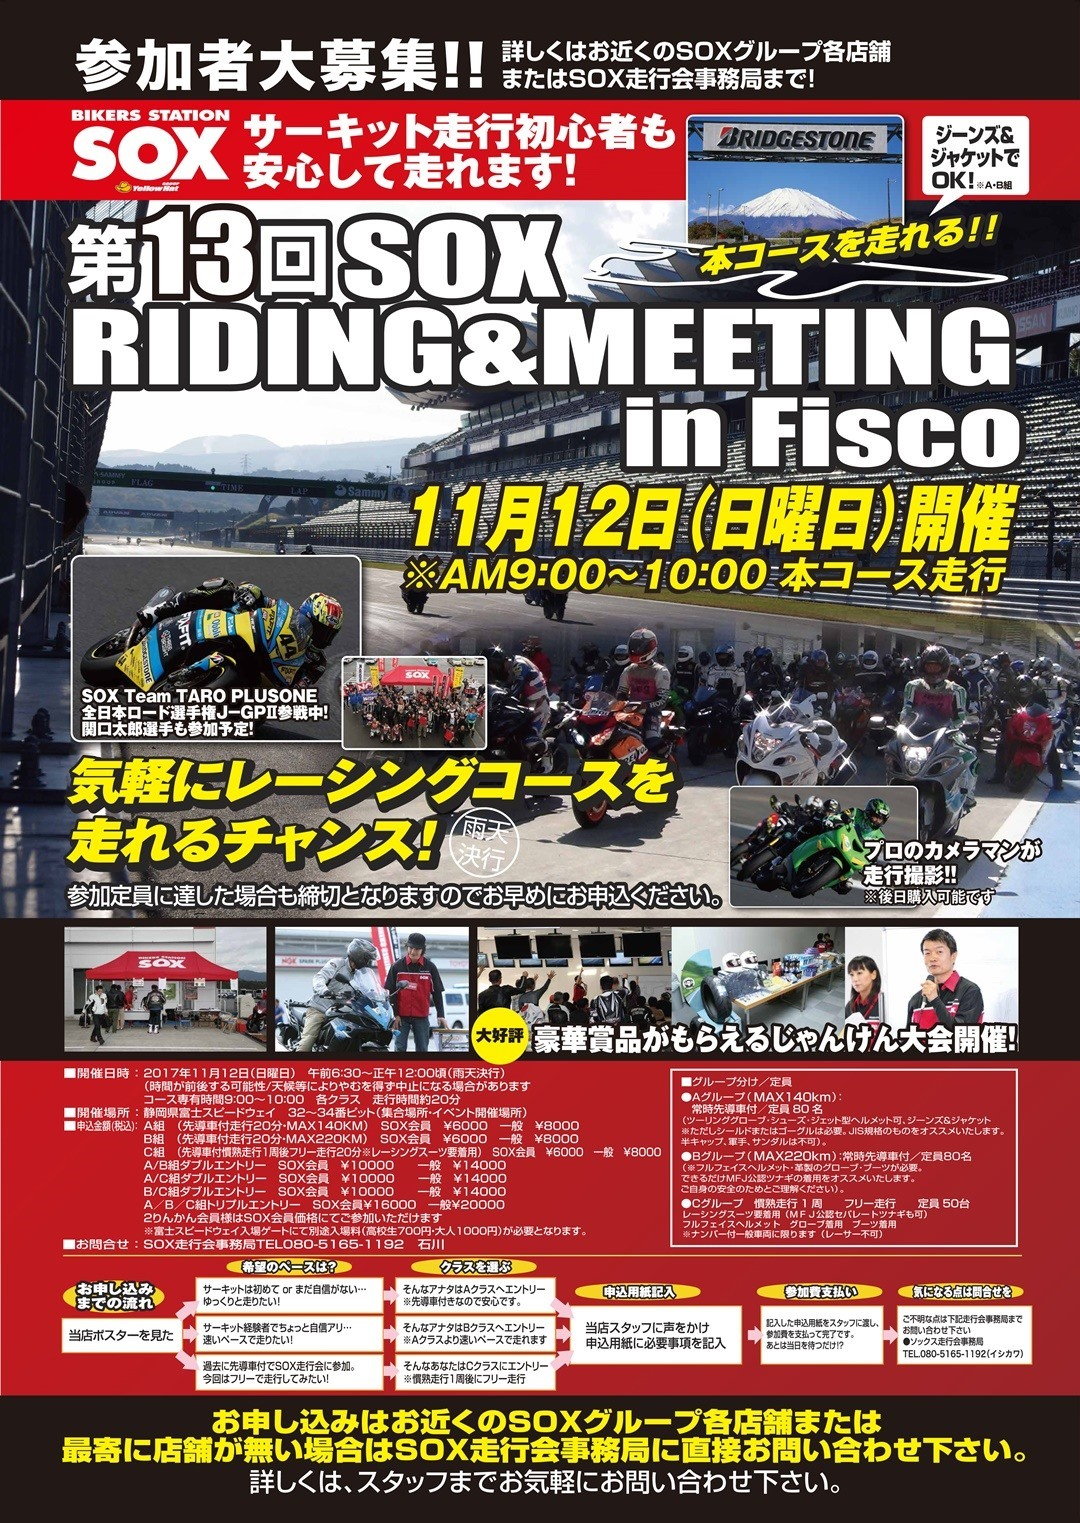 第13回 SOX RIDING&METING in Fisco_11/12(日)開催決定!